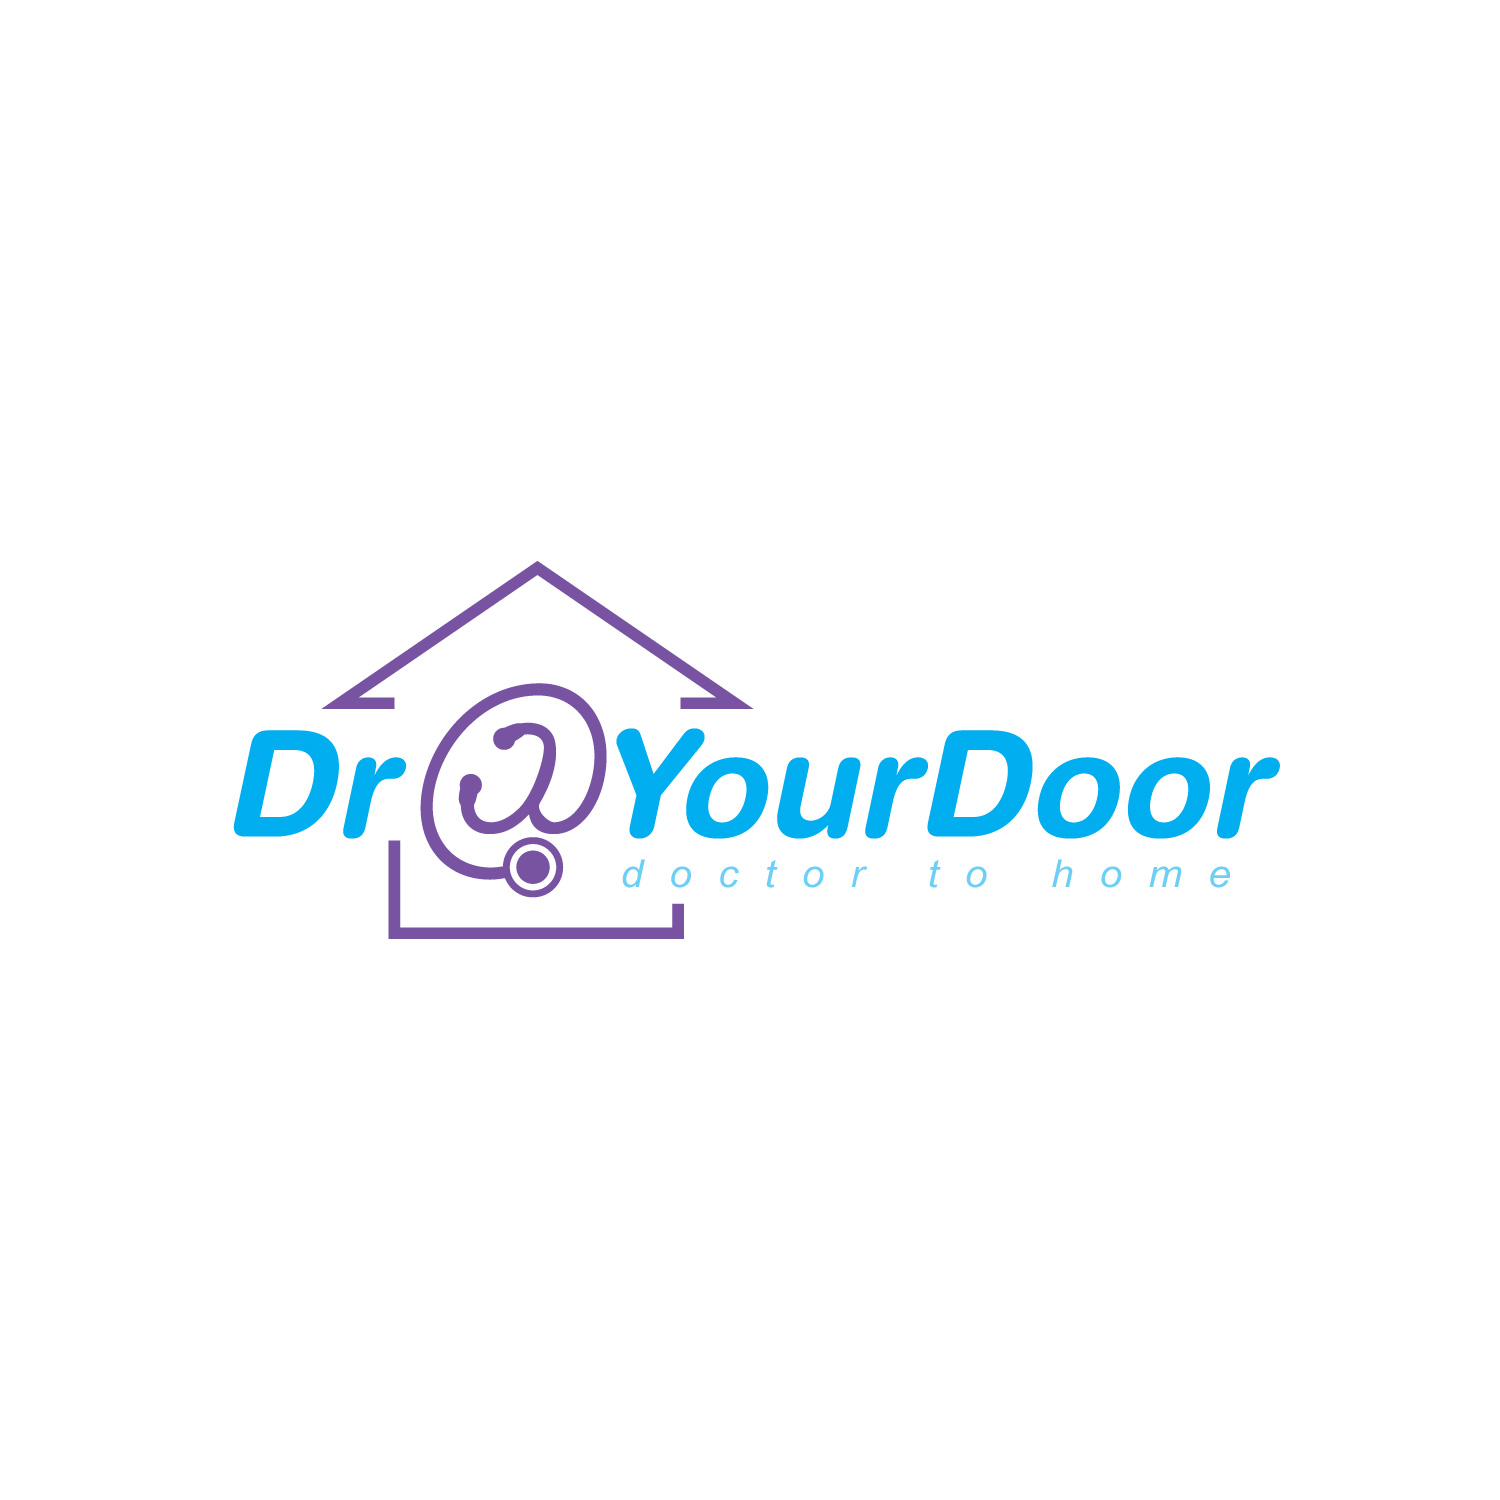 Doctor@YourDoor by Gmwire  a perfect logo for Medical & Pharmaceutical